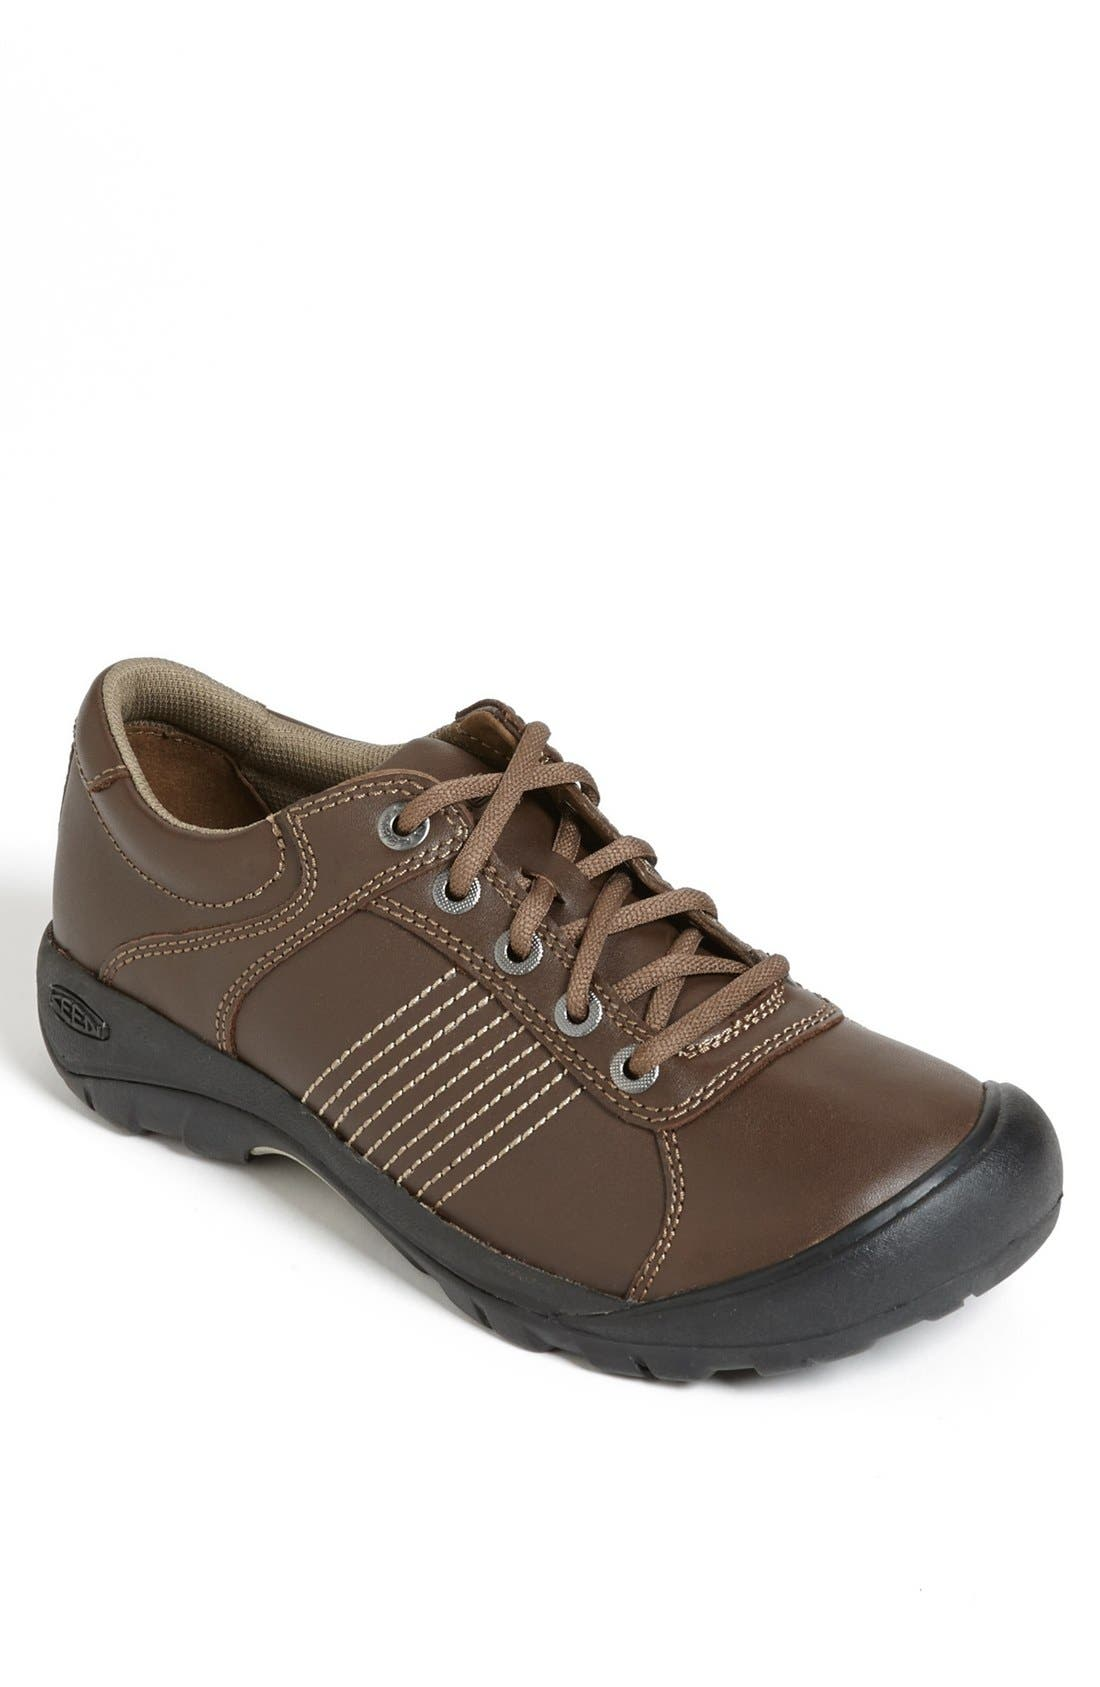 Alternate Image 1 Selected - Keen 'Finlay' Leather Oxford